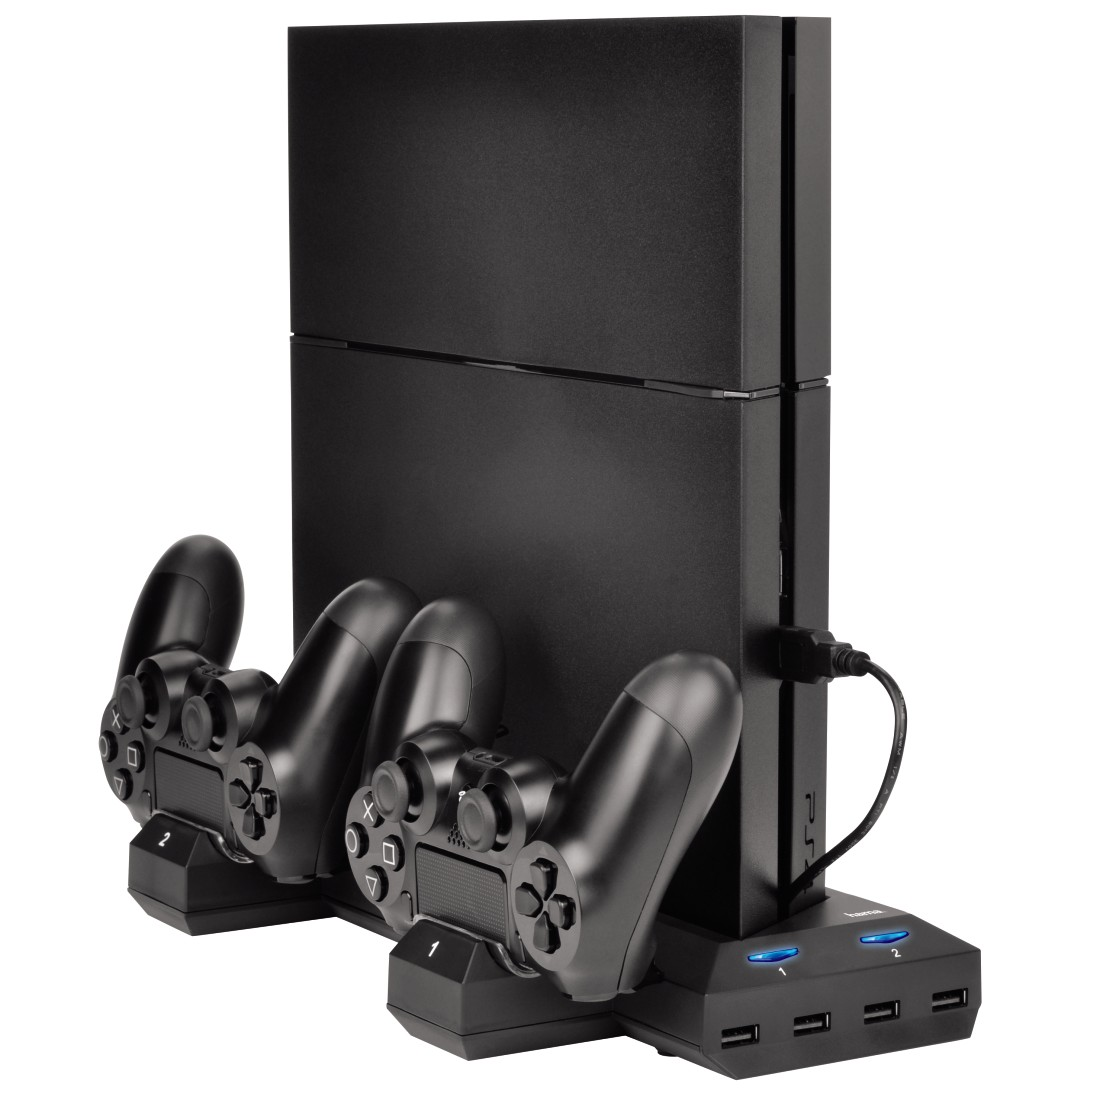 awx7 High-Res Appliance 7 - Hama, Bluelight Multi-Stand Charging Station for PS4